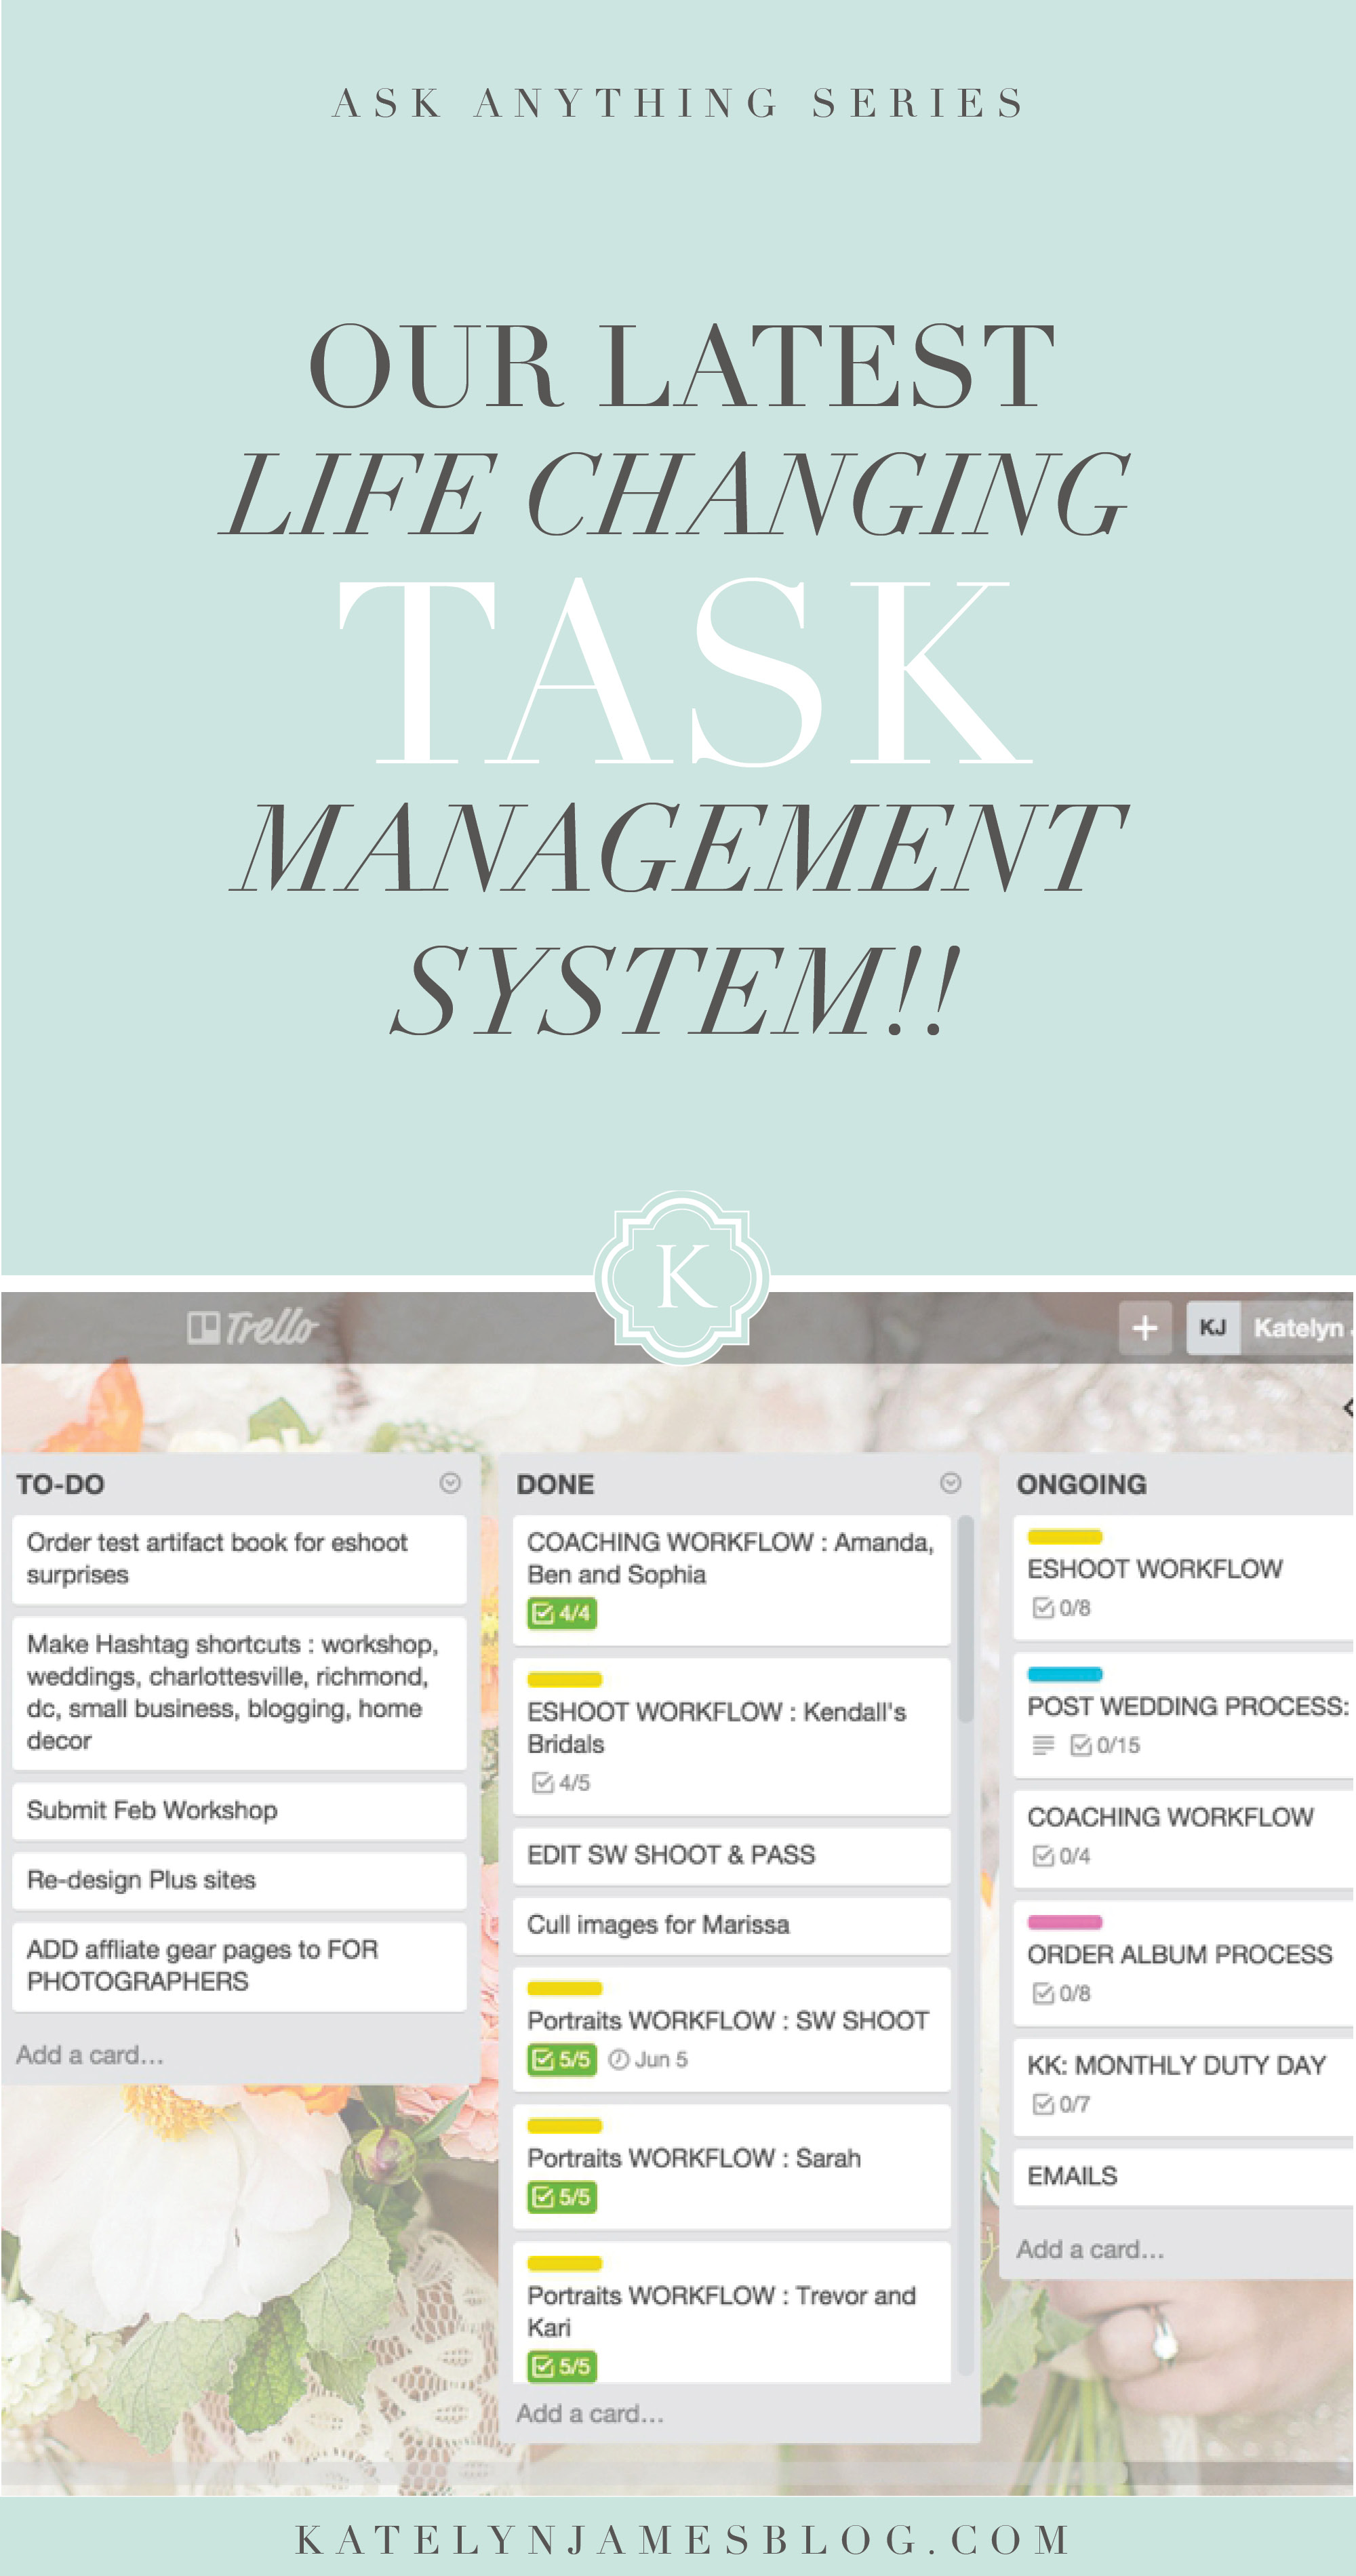 Our Latest Life Changing Task Management System by Katelyn James Photography